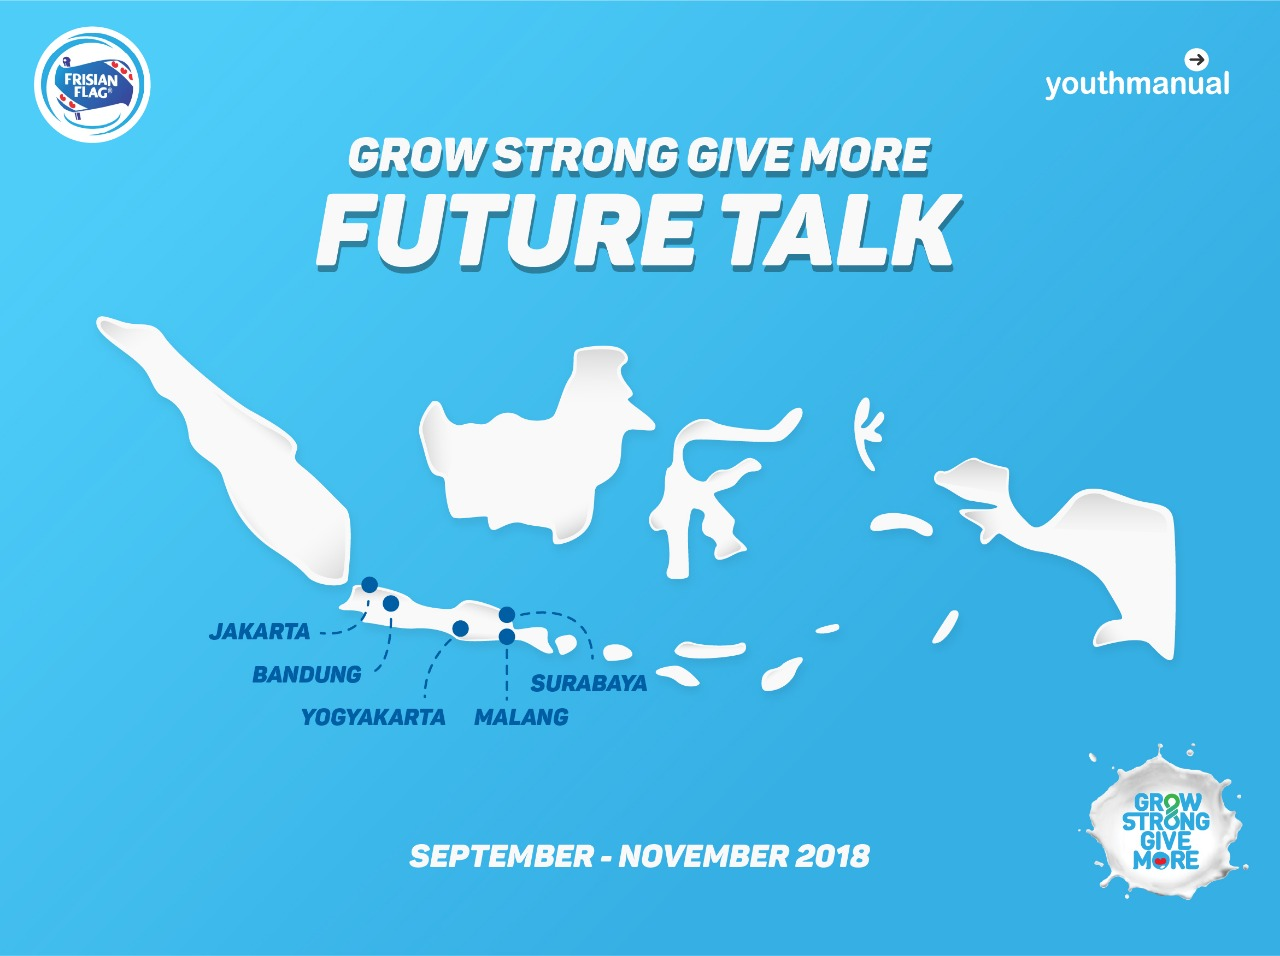 grow strong give more future talk 2018